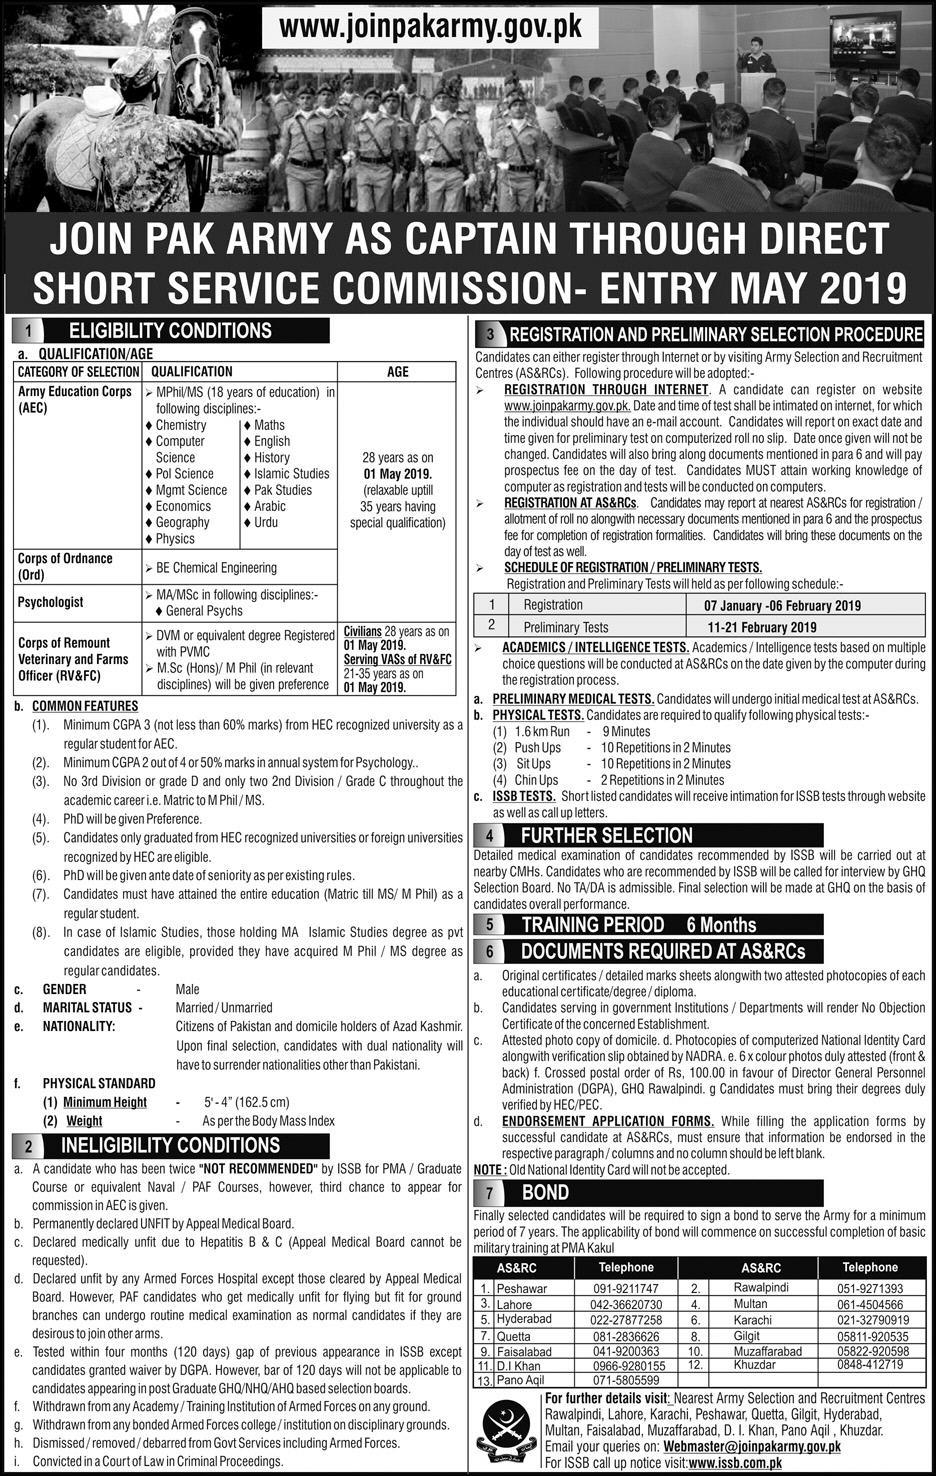 Join Pak Army As Captain 2019 Registration Online